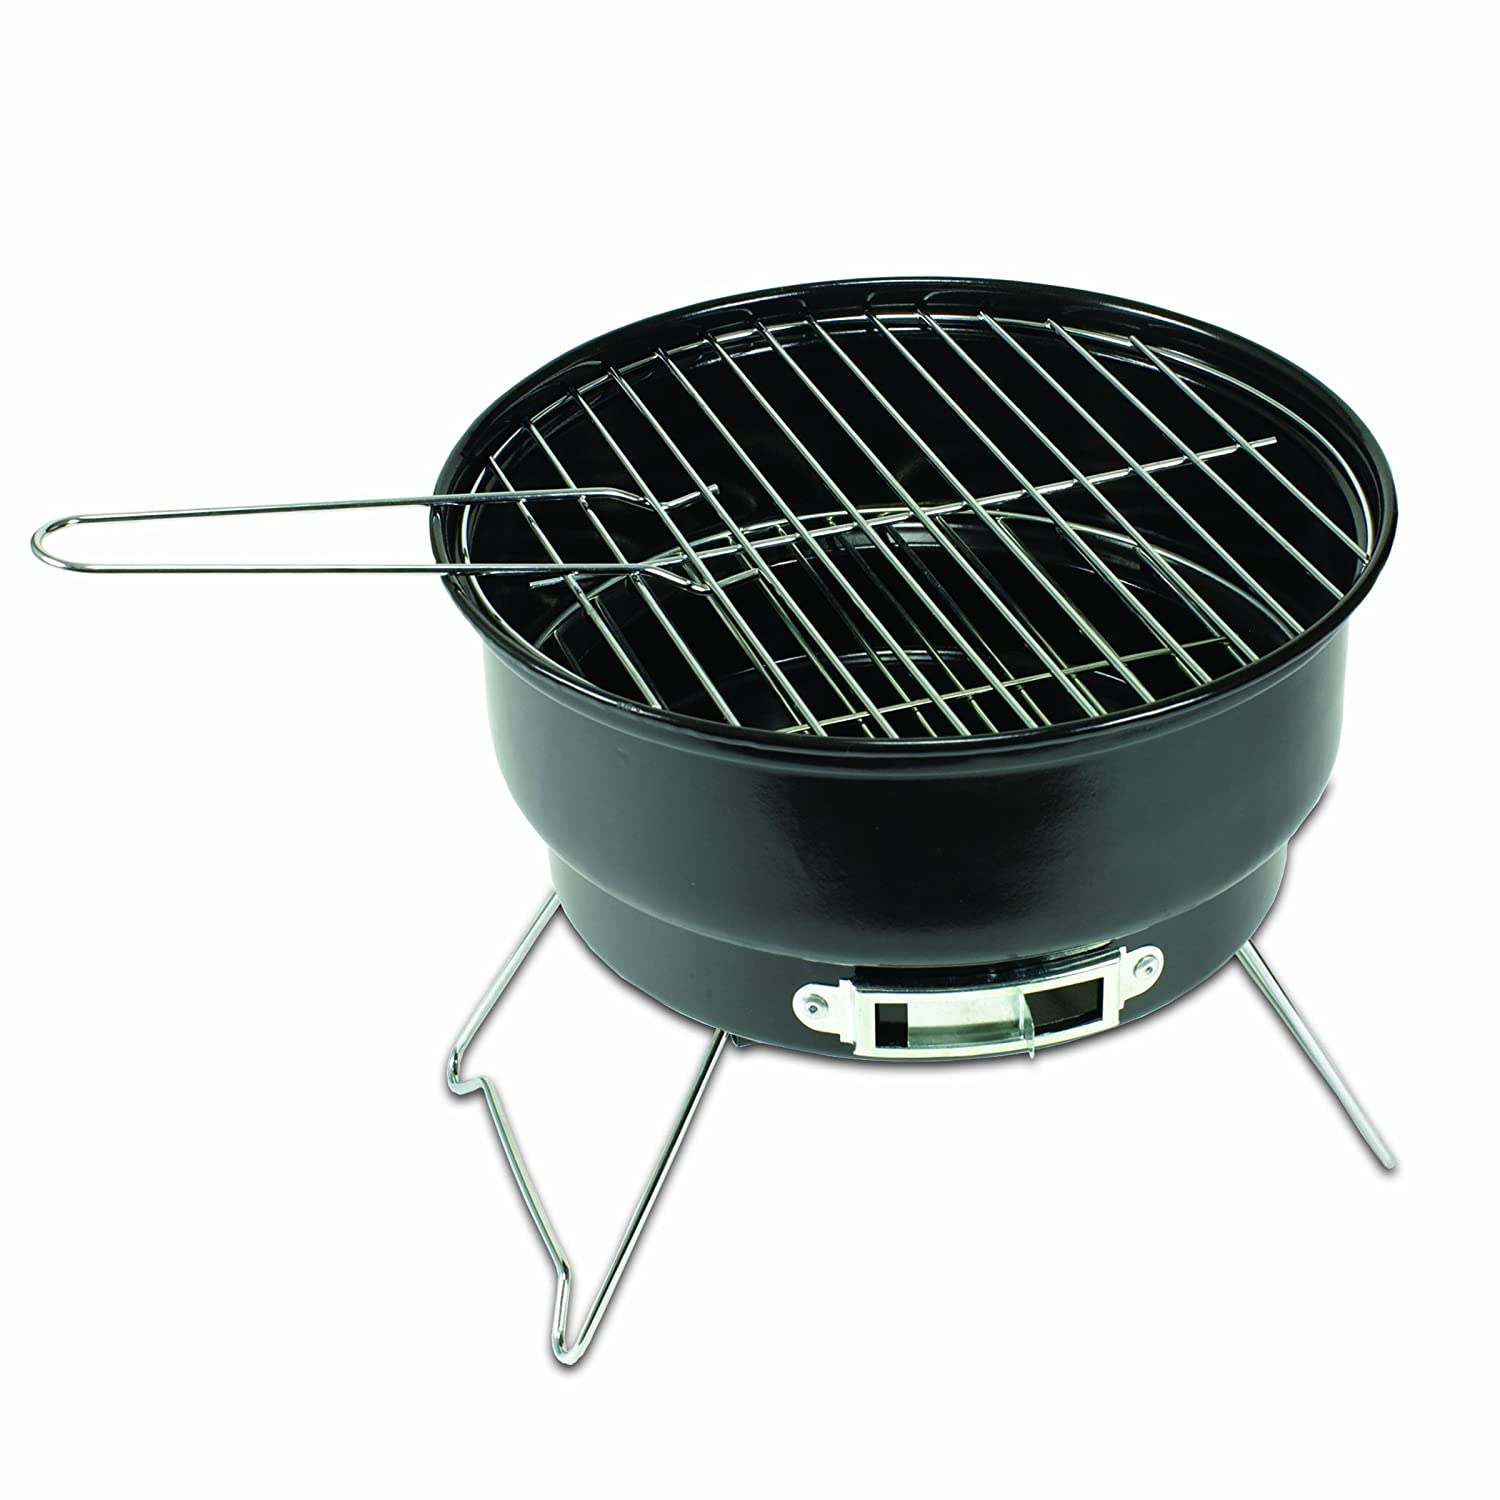 Amazon.com : Picnic Time Caliente Portable BBQ Grill/Cooler Set : Bbq  Accessories : Sports U0026 Outdoors